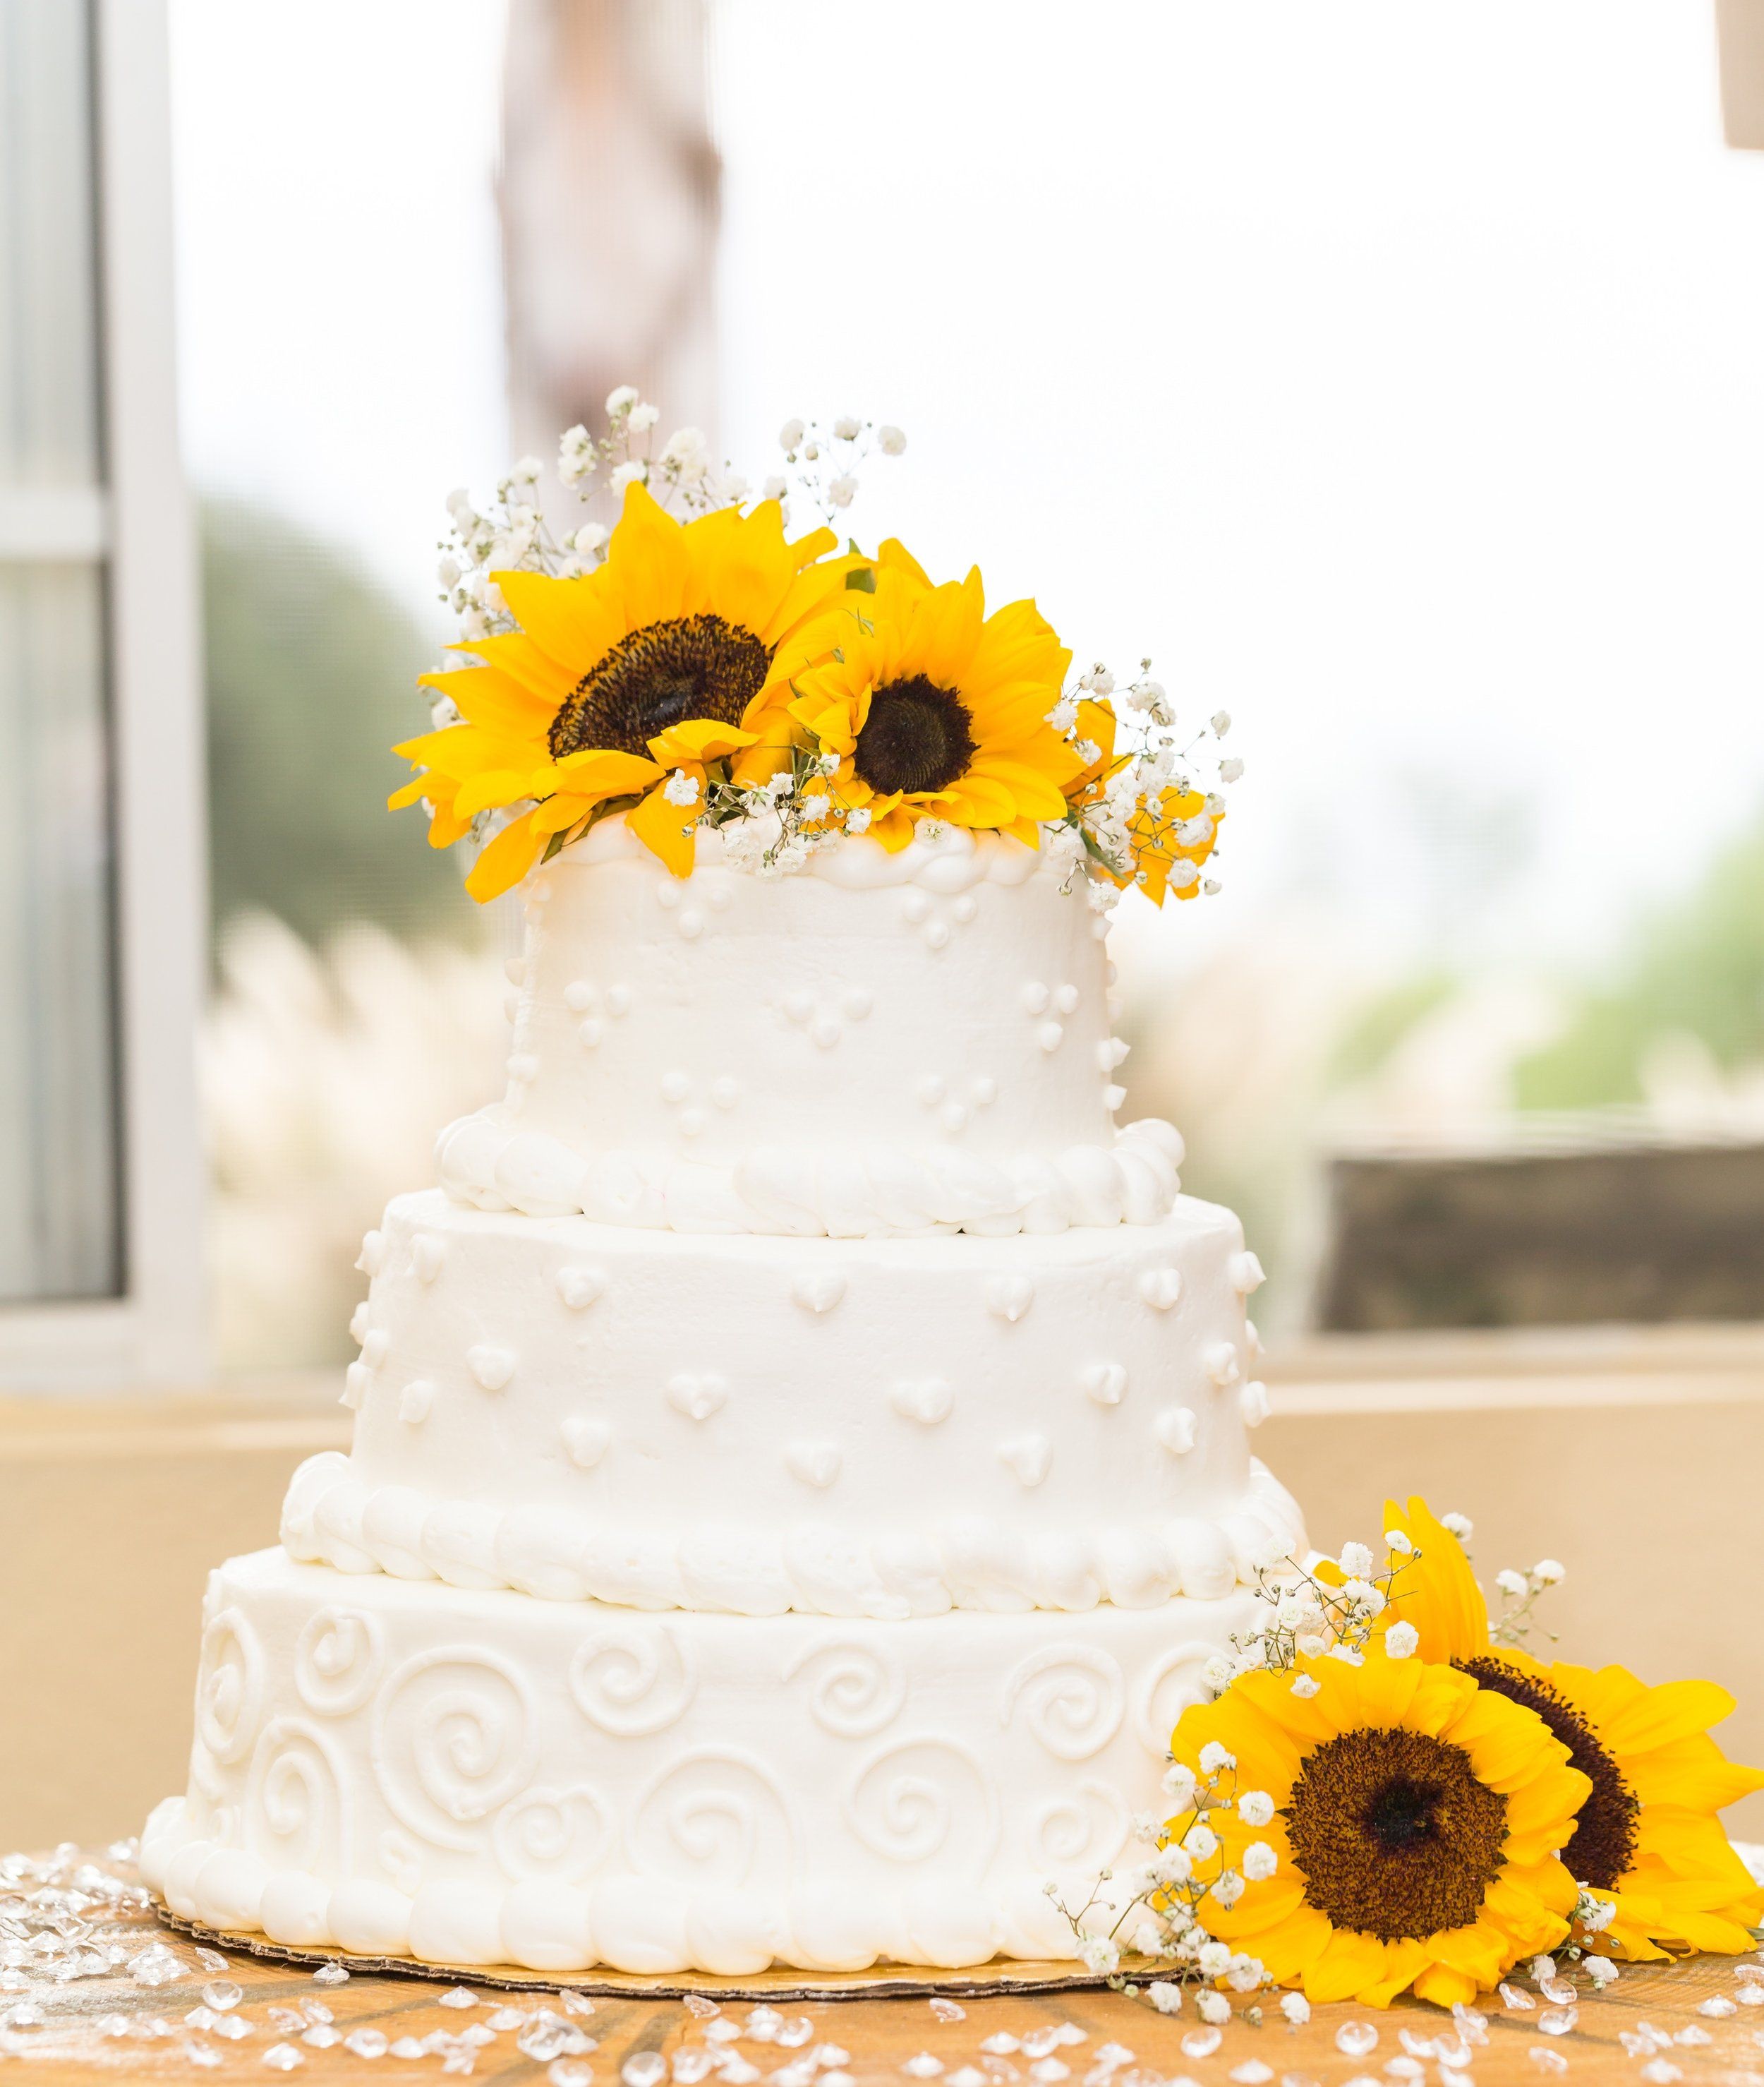 Photo of White Country Wedding Cake with Sunflowers.jpg